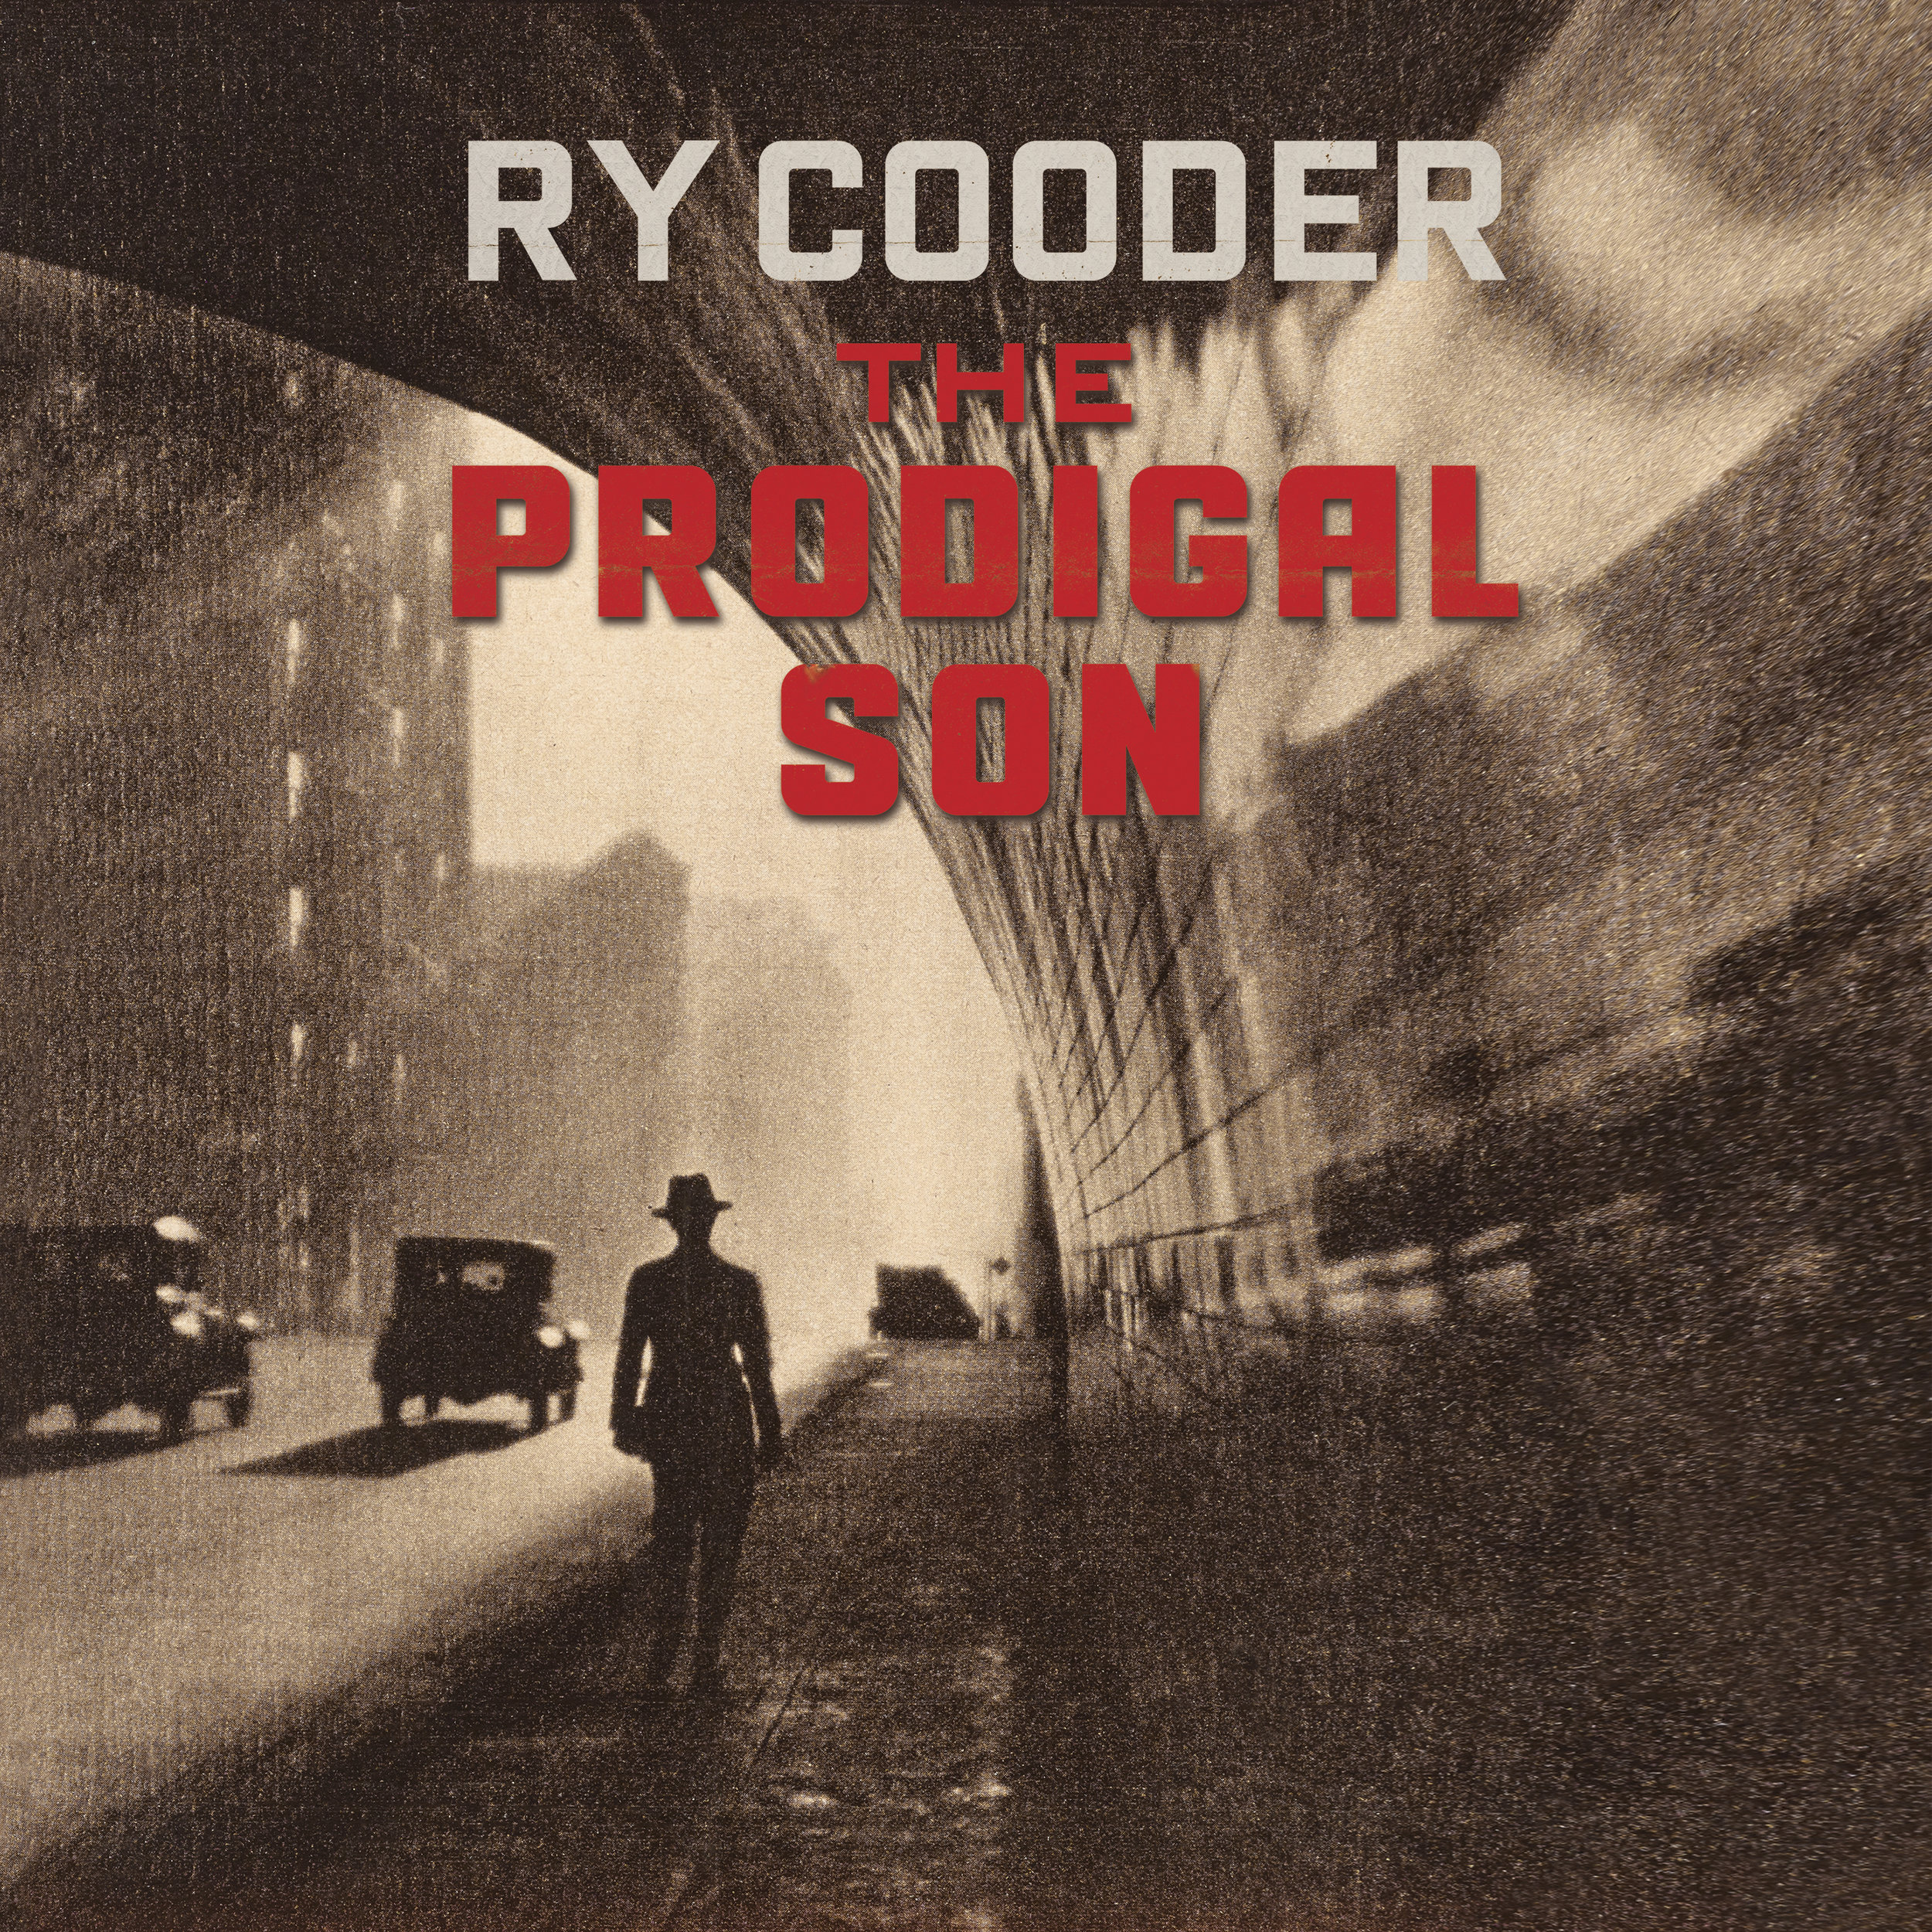 The Prodigal Son  Ry Cooder   LINKS   Official Site   Facebook   Twitter   Instagram    LISTEN ON   Spotify    Apple Music